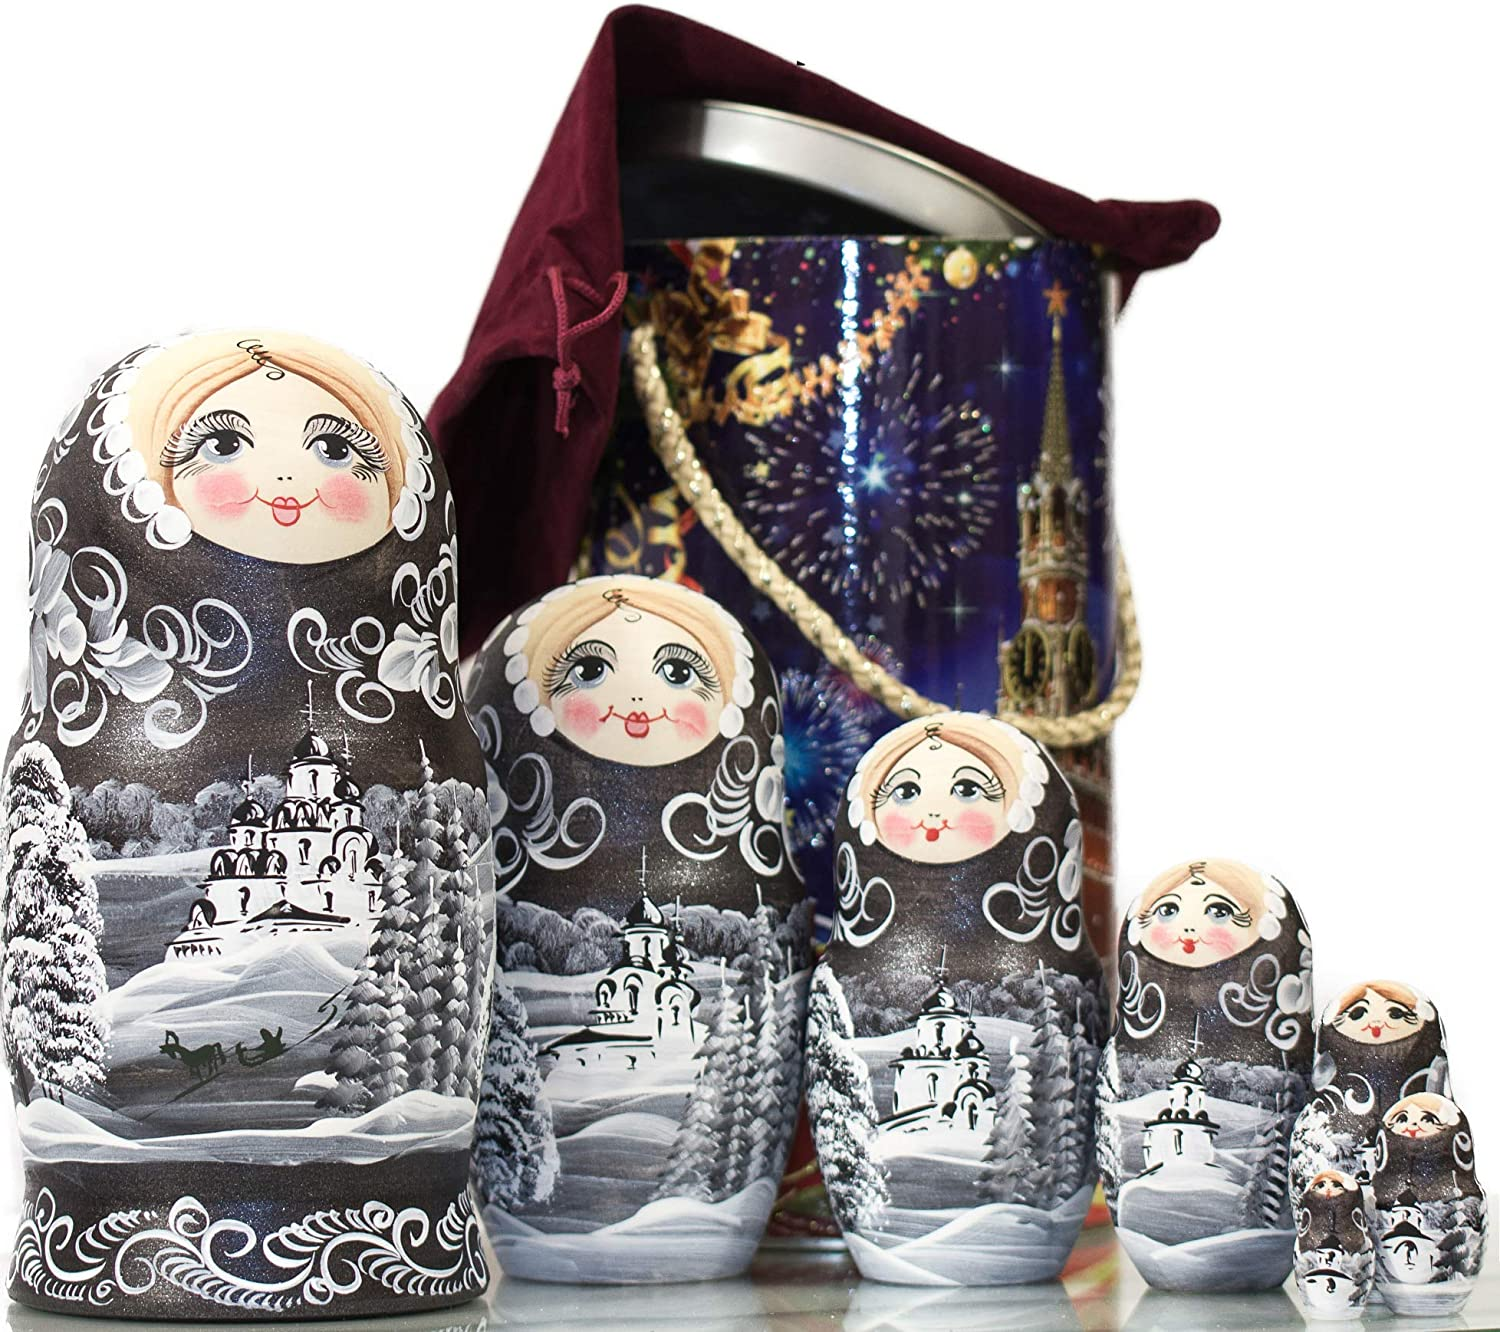 7 Dolls in 1 Russian Nesting Doll 8`` Wooden Decoration Gift Doll Winter`s Tale Traditional Matryoshka Babushka , Purple Moscow Kremlin Gift Box Hand Painted in Russia